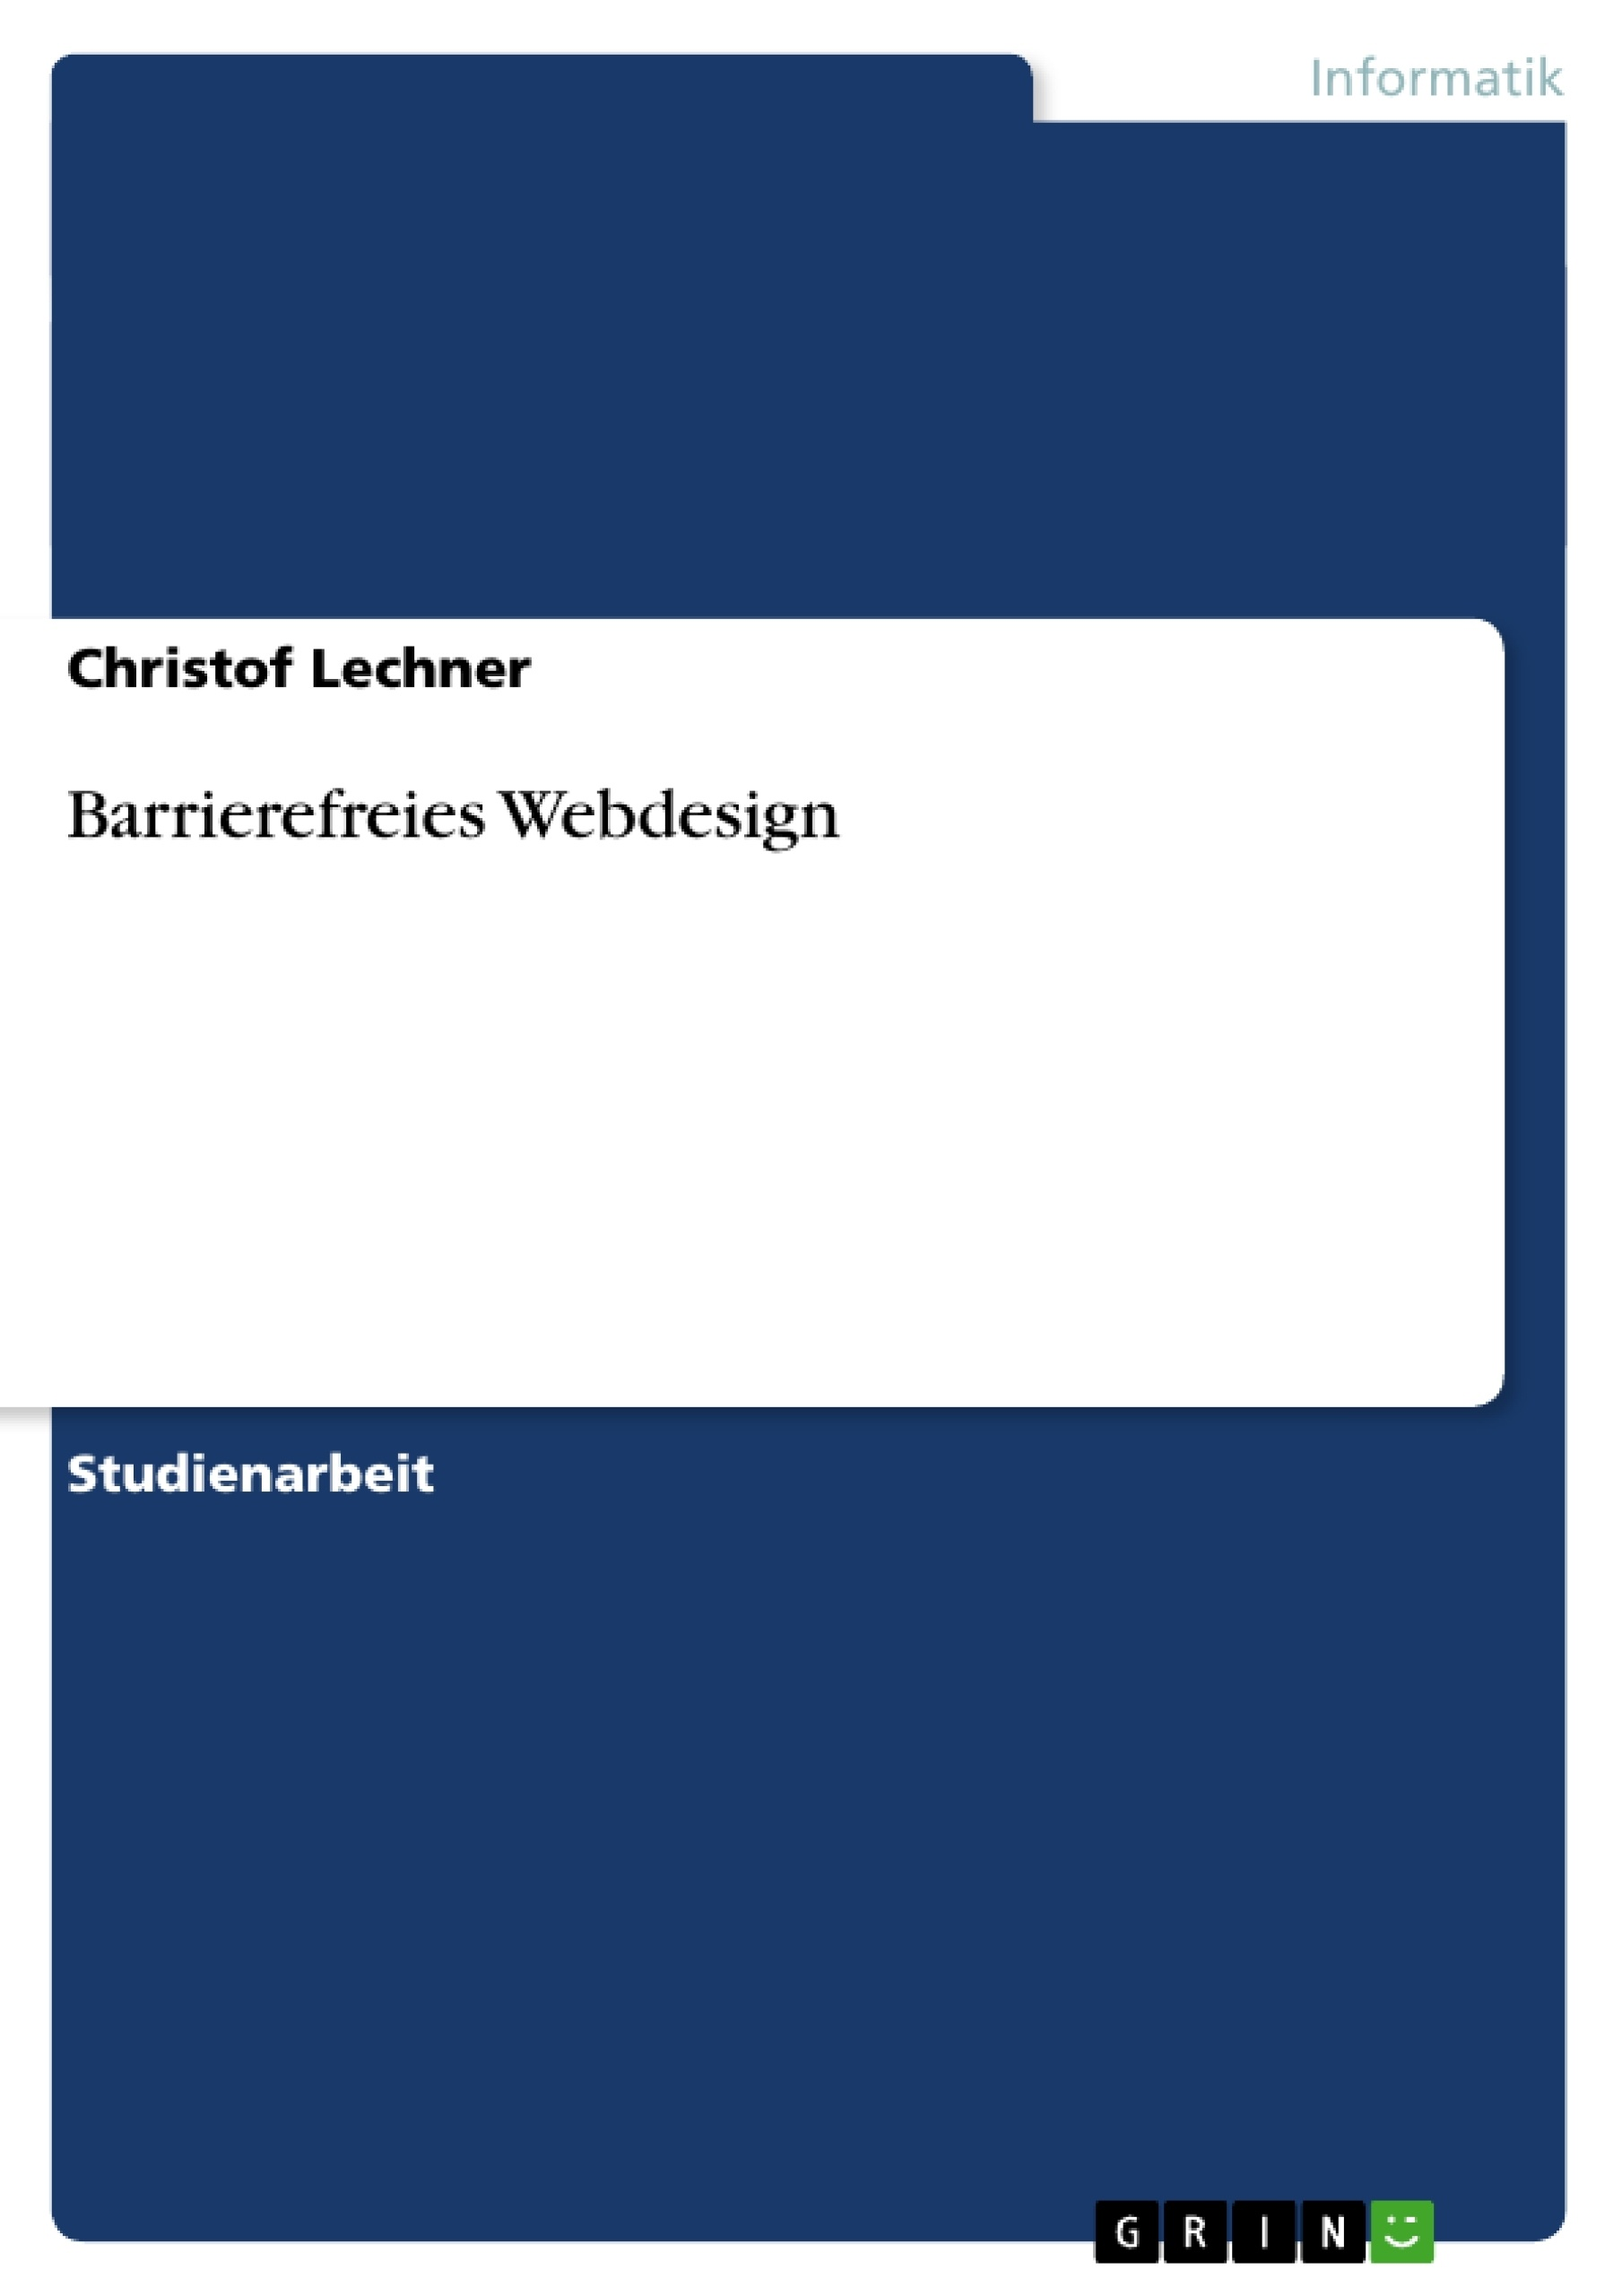 Titel: Barrierefreies Webdesign